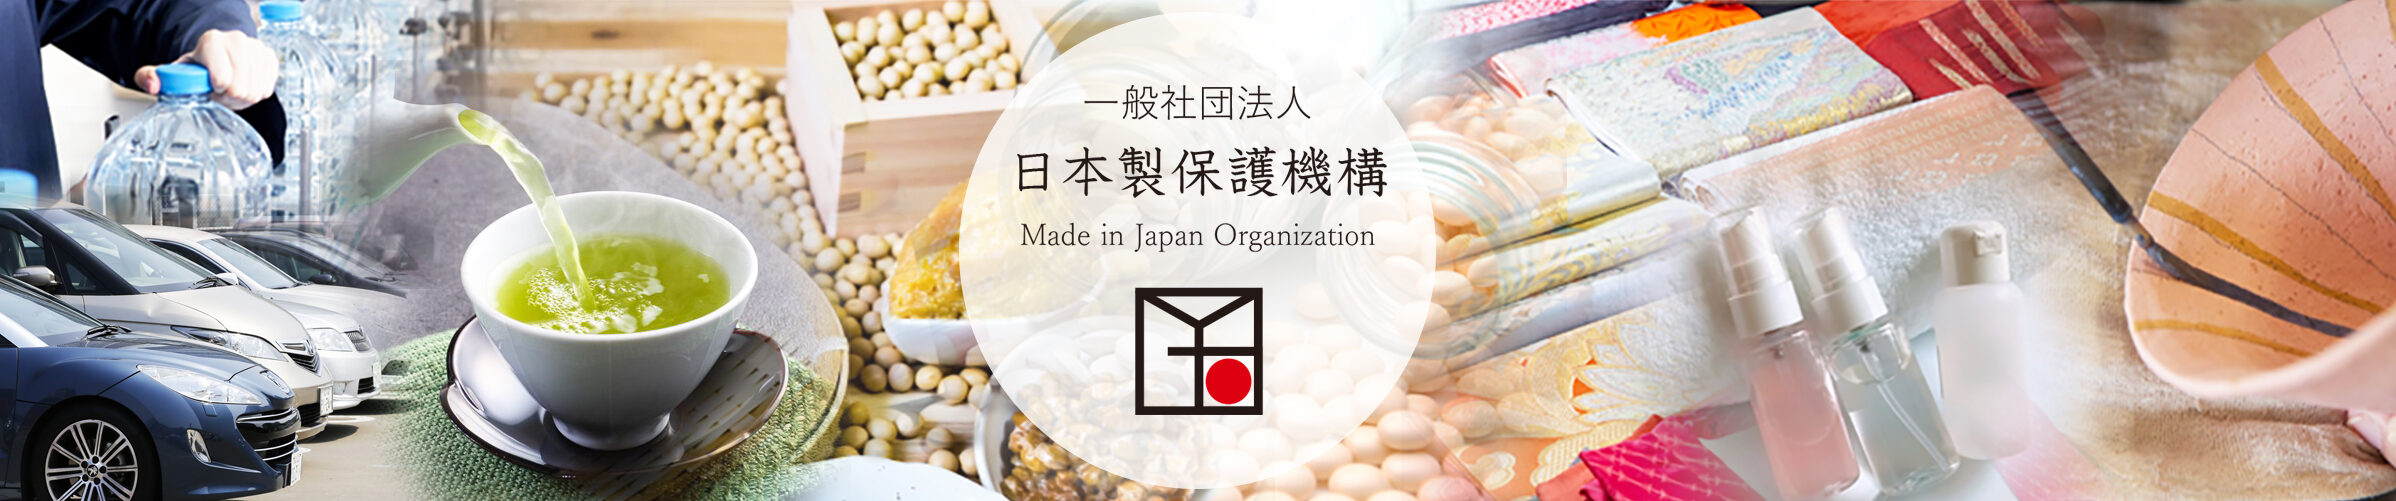 Made in Japan Organization